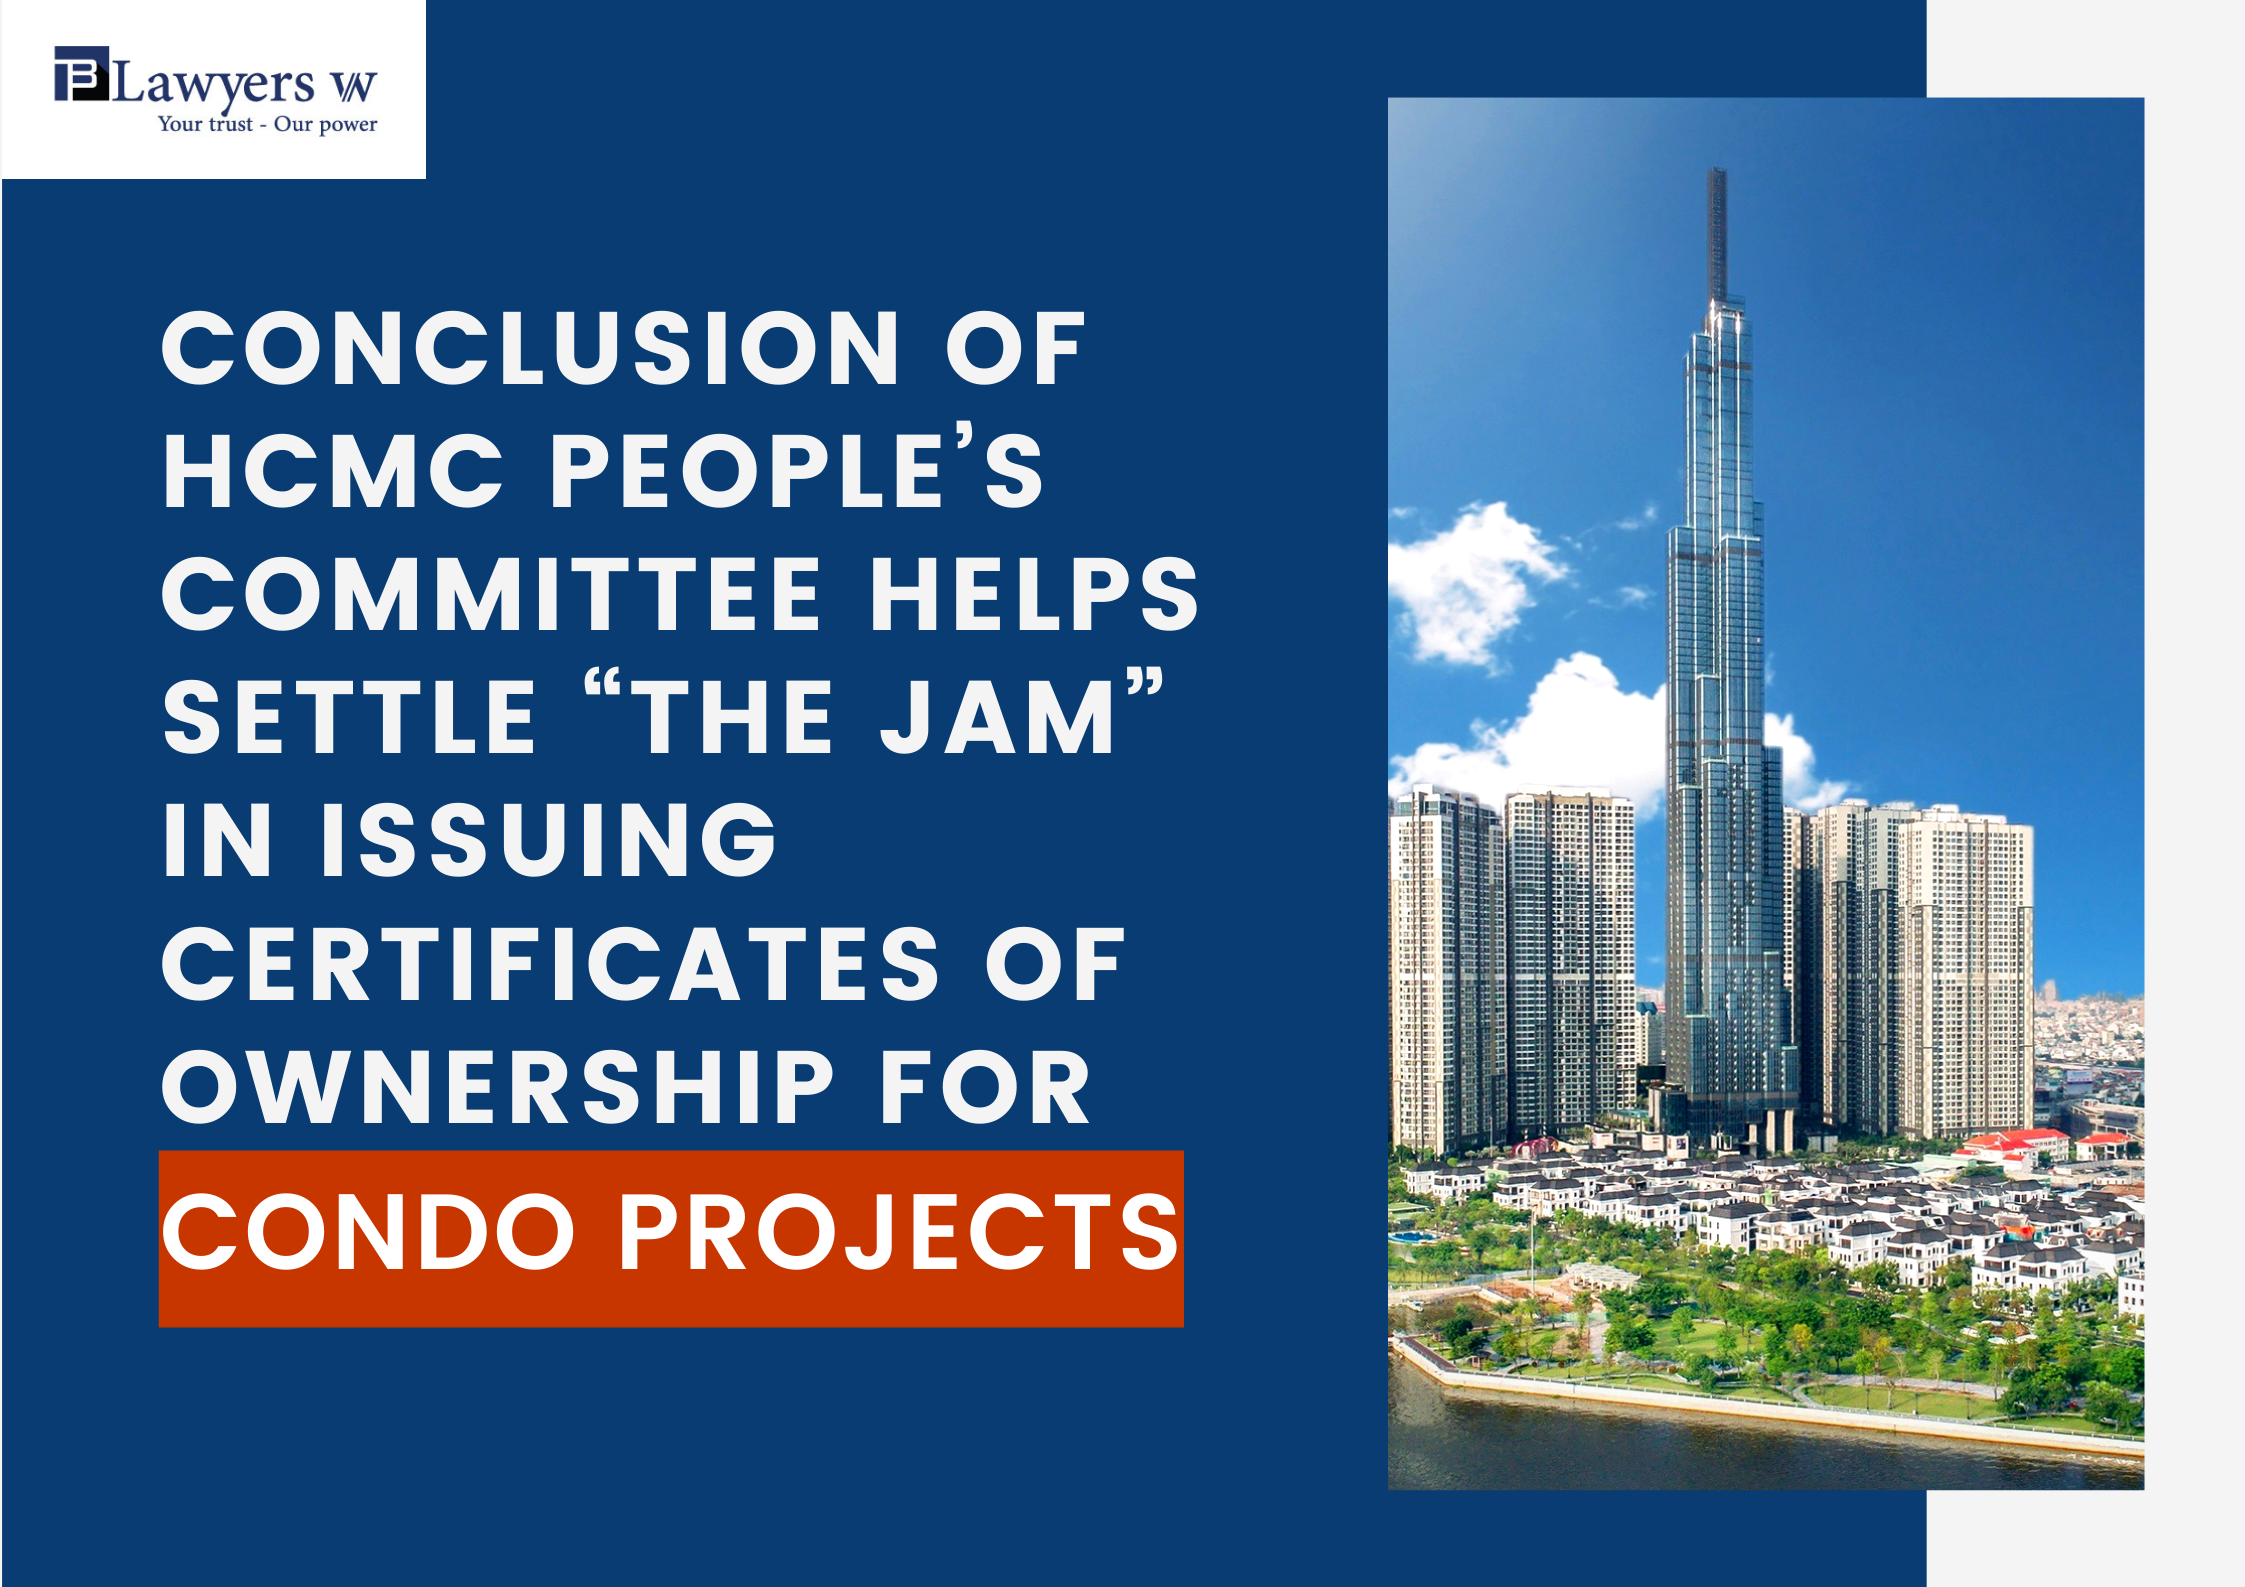 """Conclusion of HCMC People's Committee helps settle """"the jam"""" in issuing certificates of ownership for condo projects"""